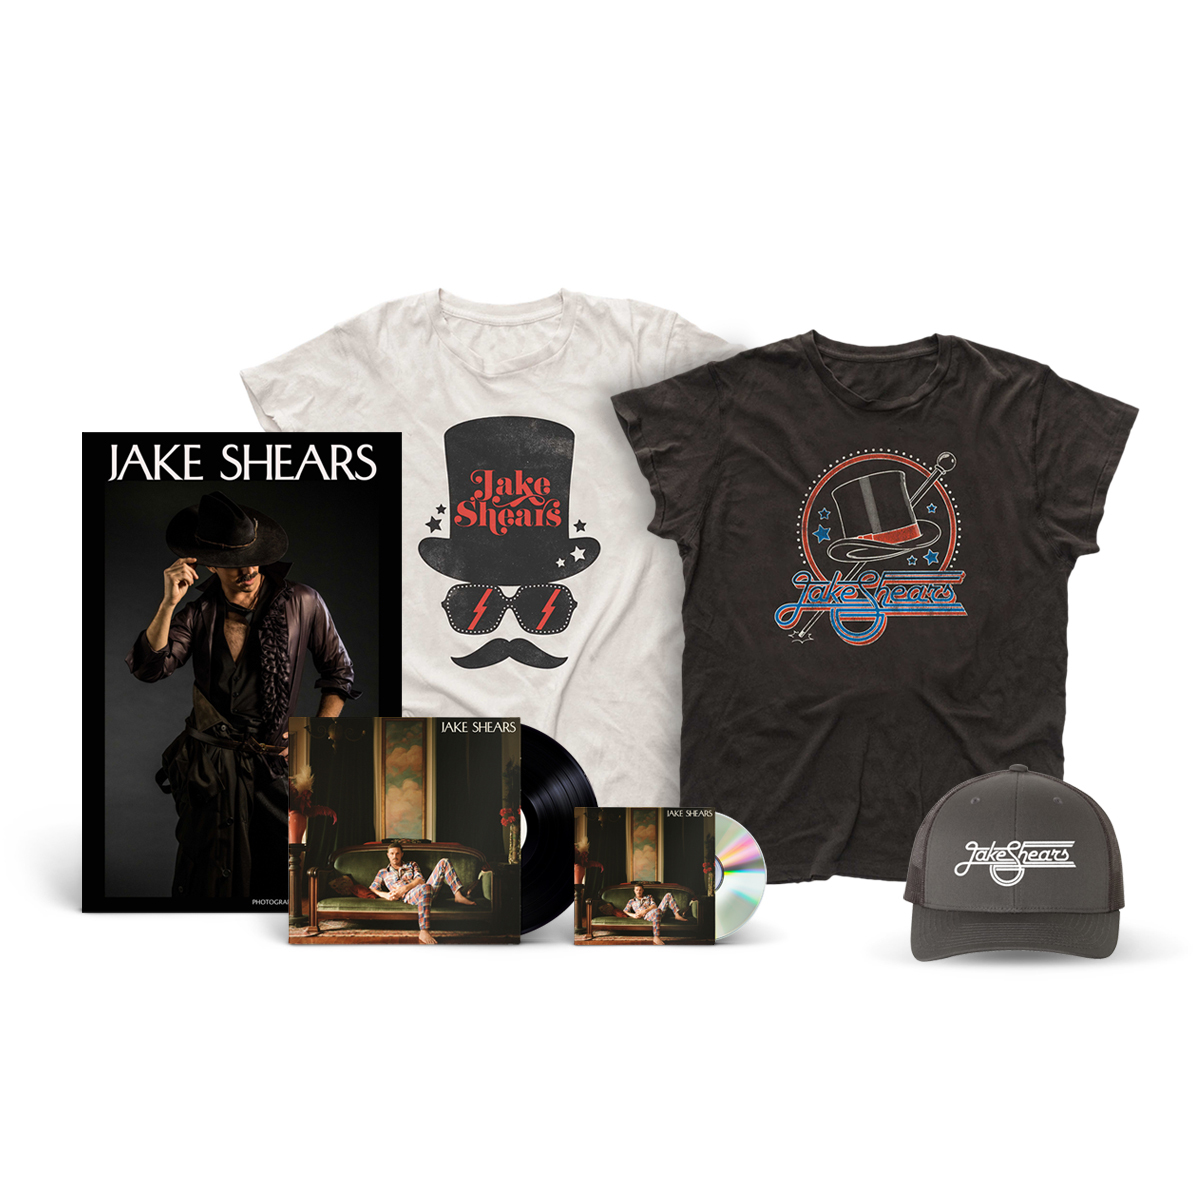 The Everything I'll Ever Need Bundle